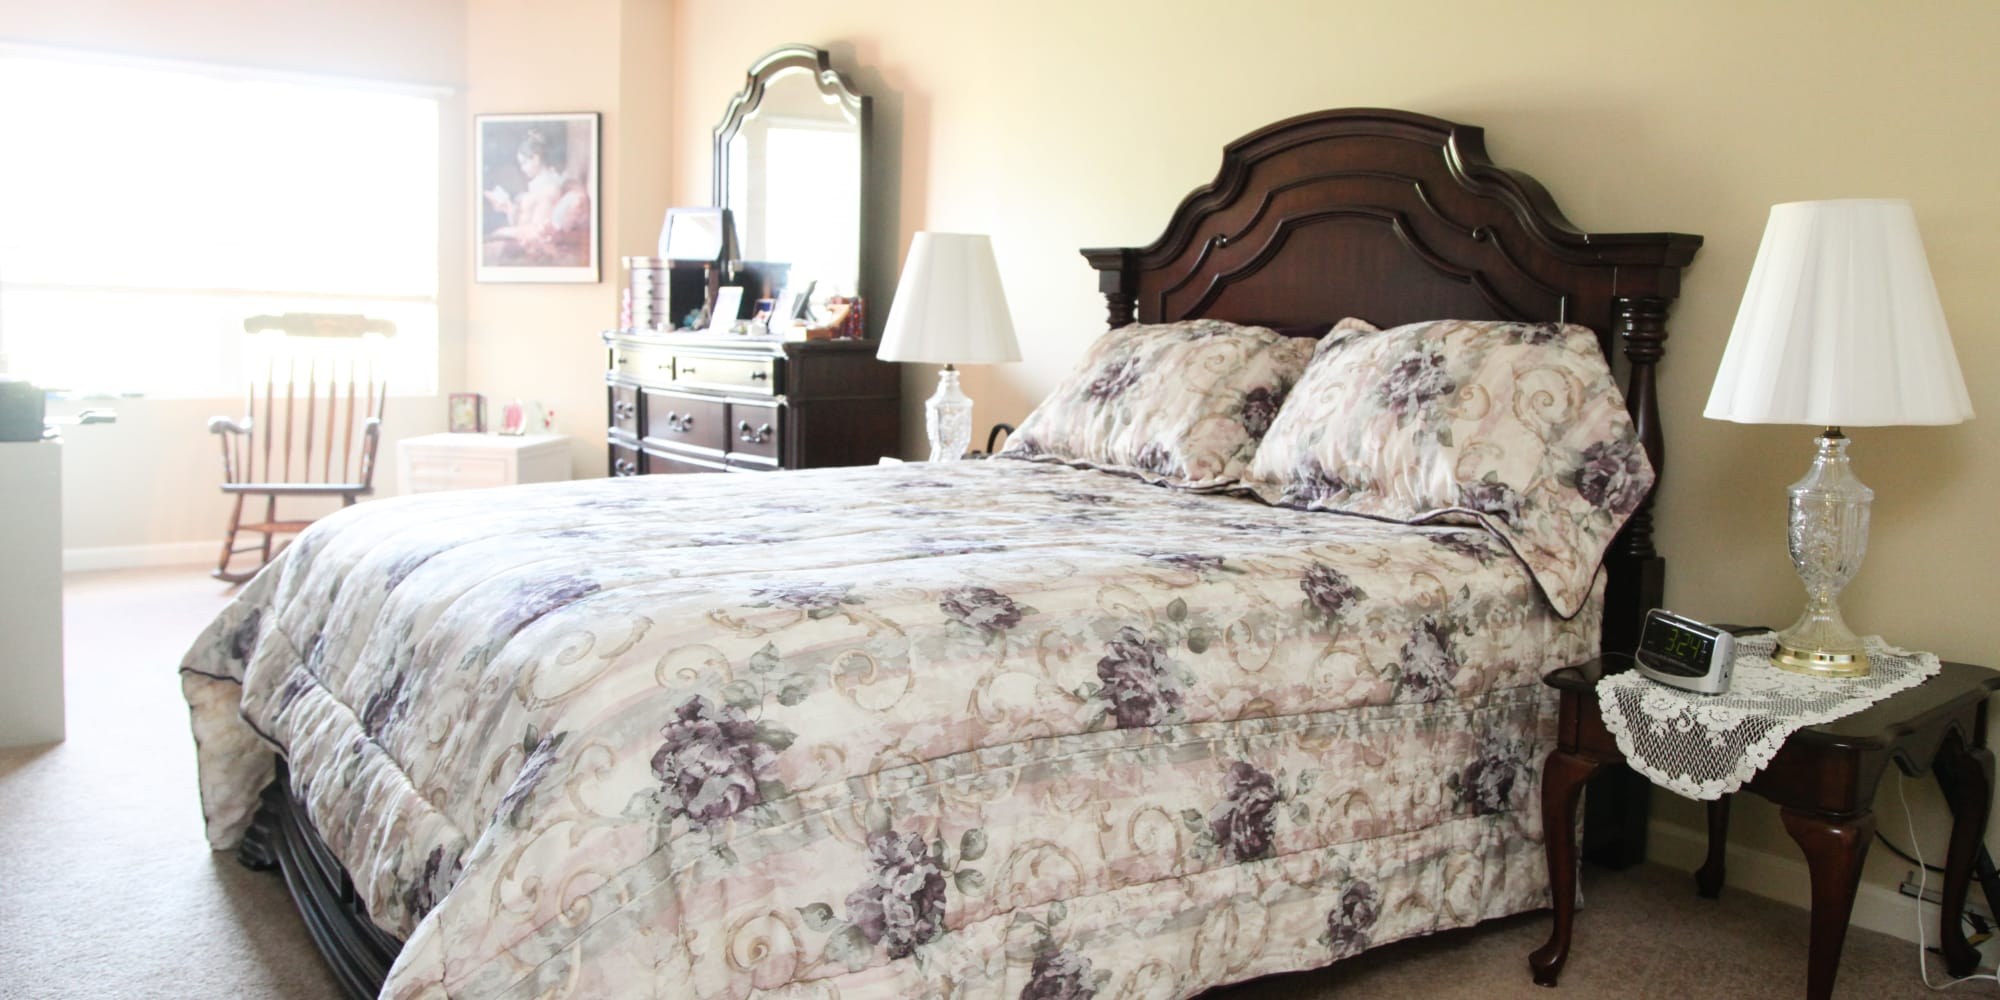 A model resident bedroom in a Keystone community